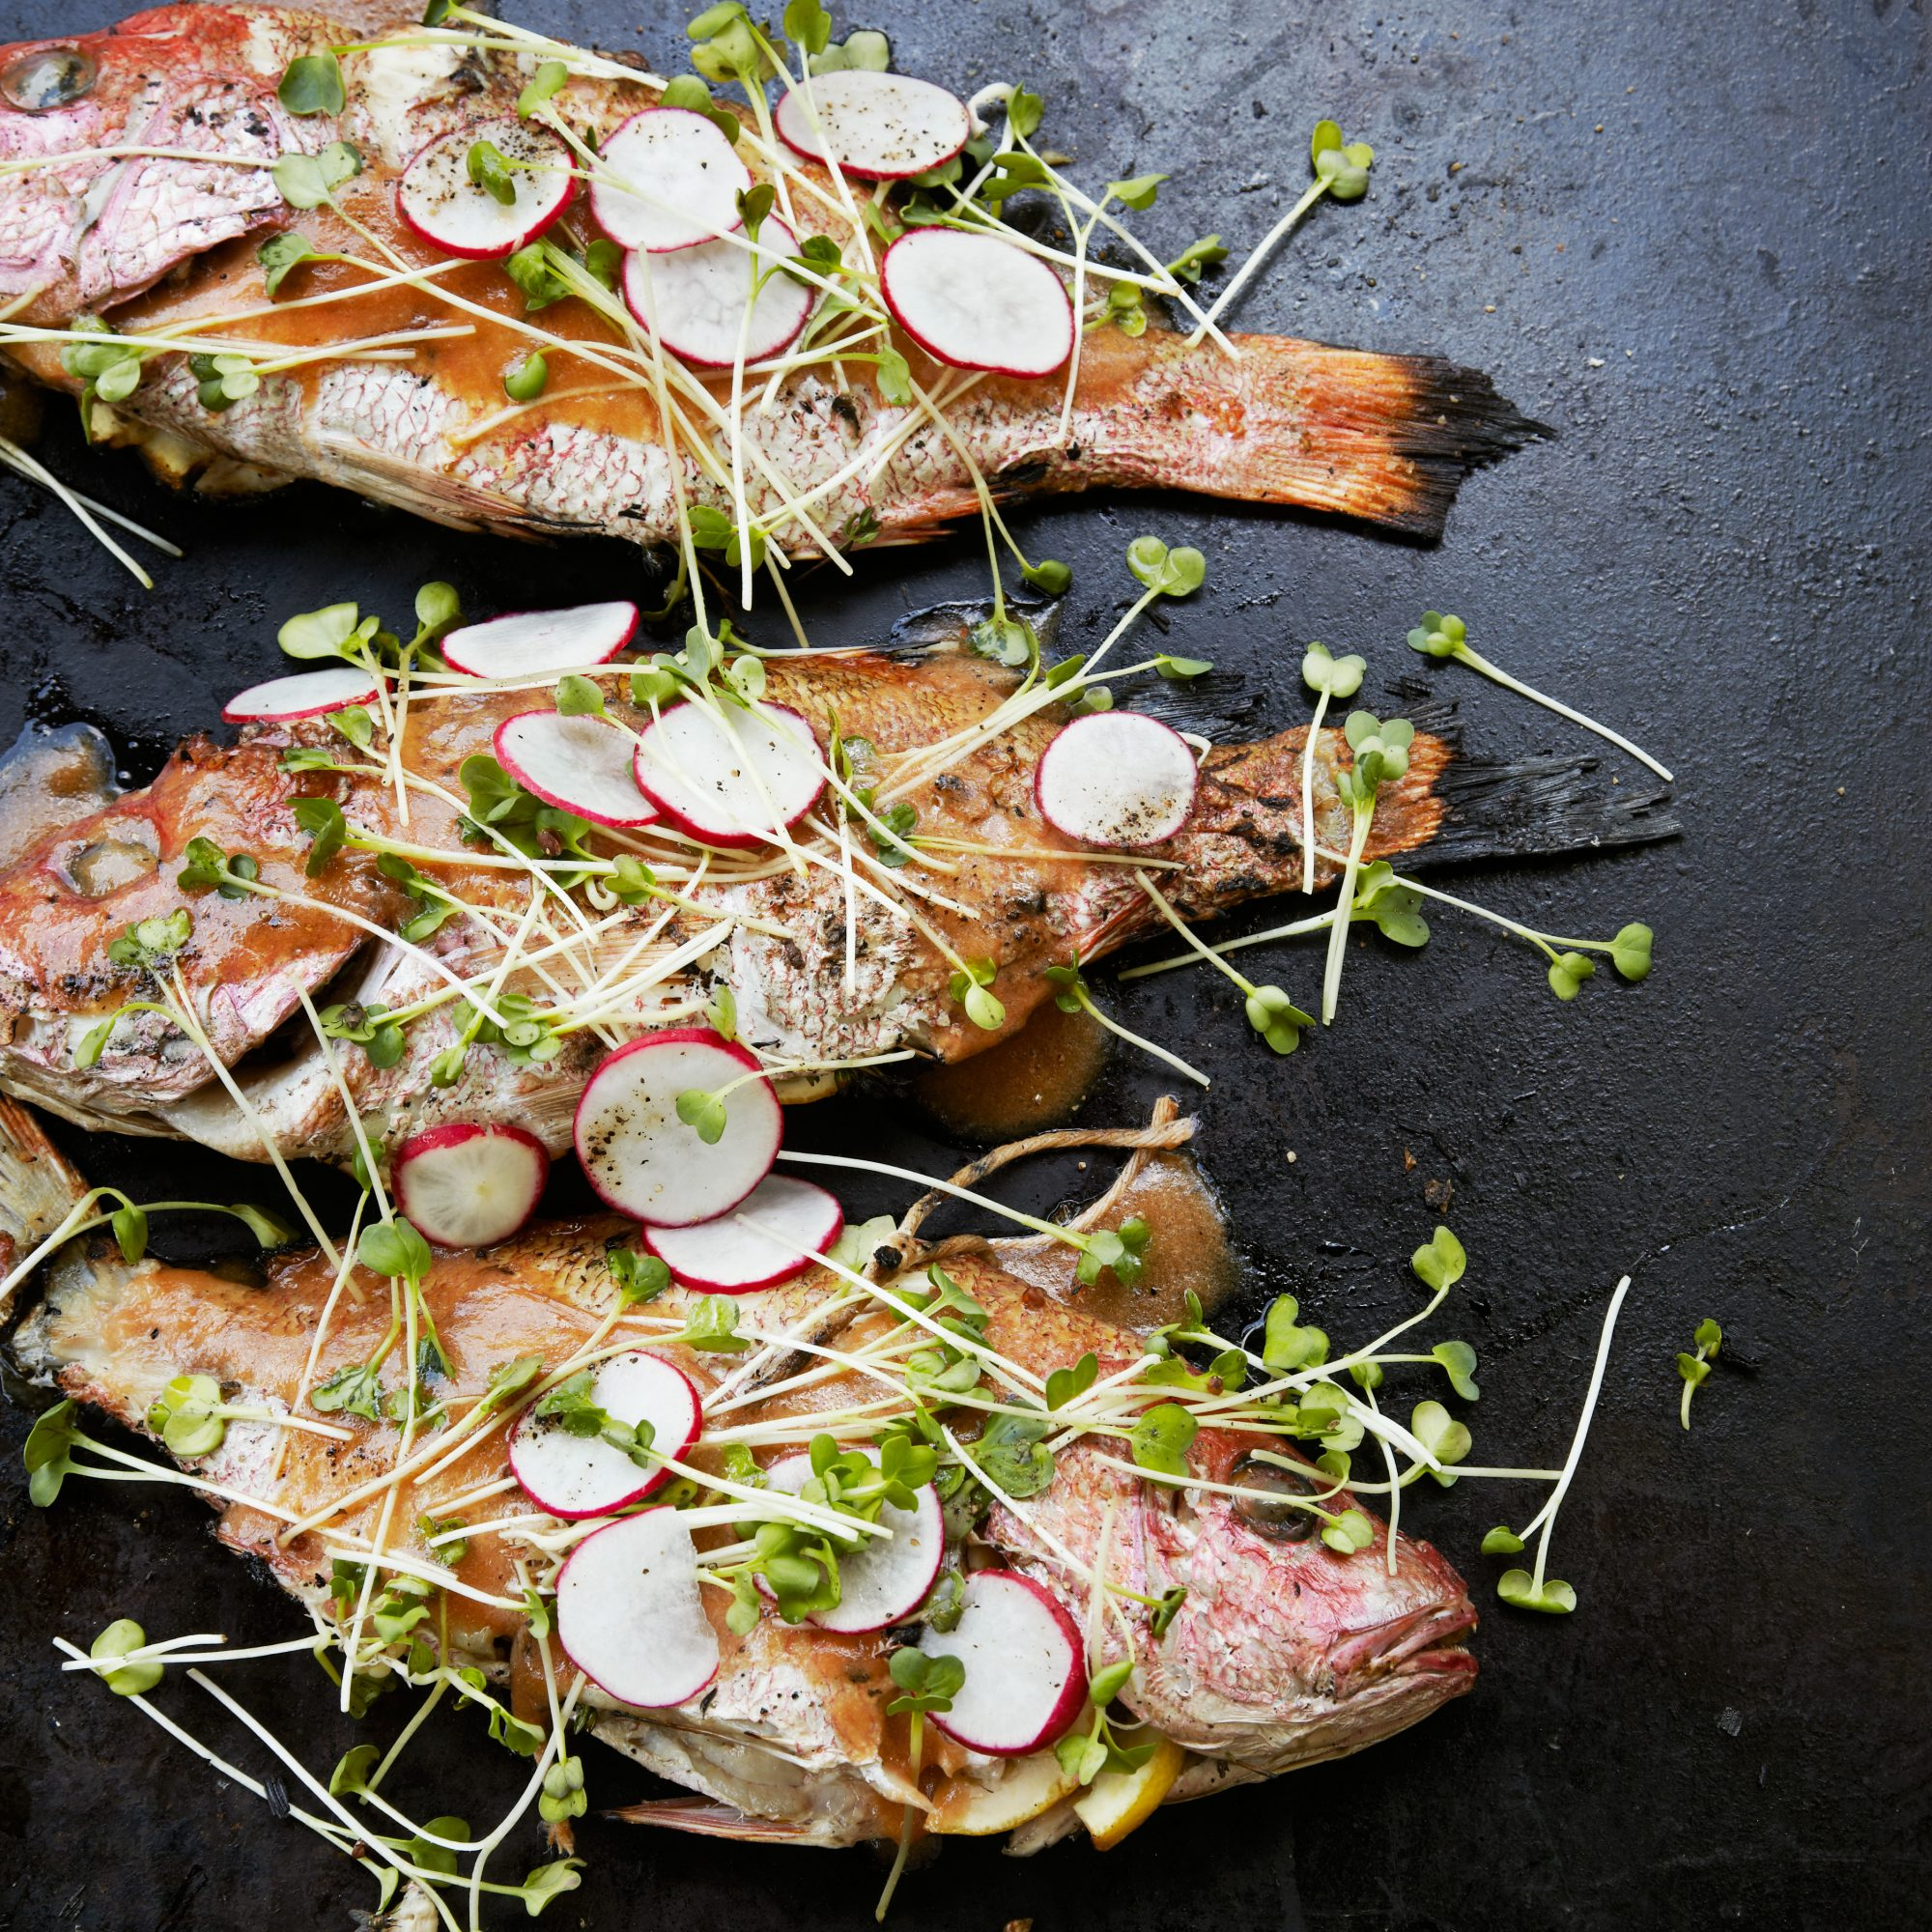 Asian-Style Grilled Whole Red Snapper with Radish Salad